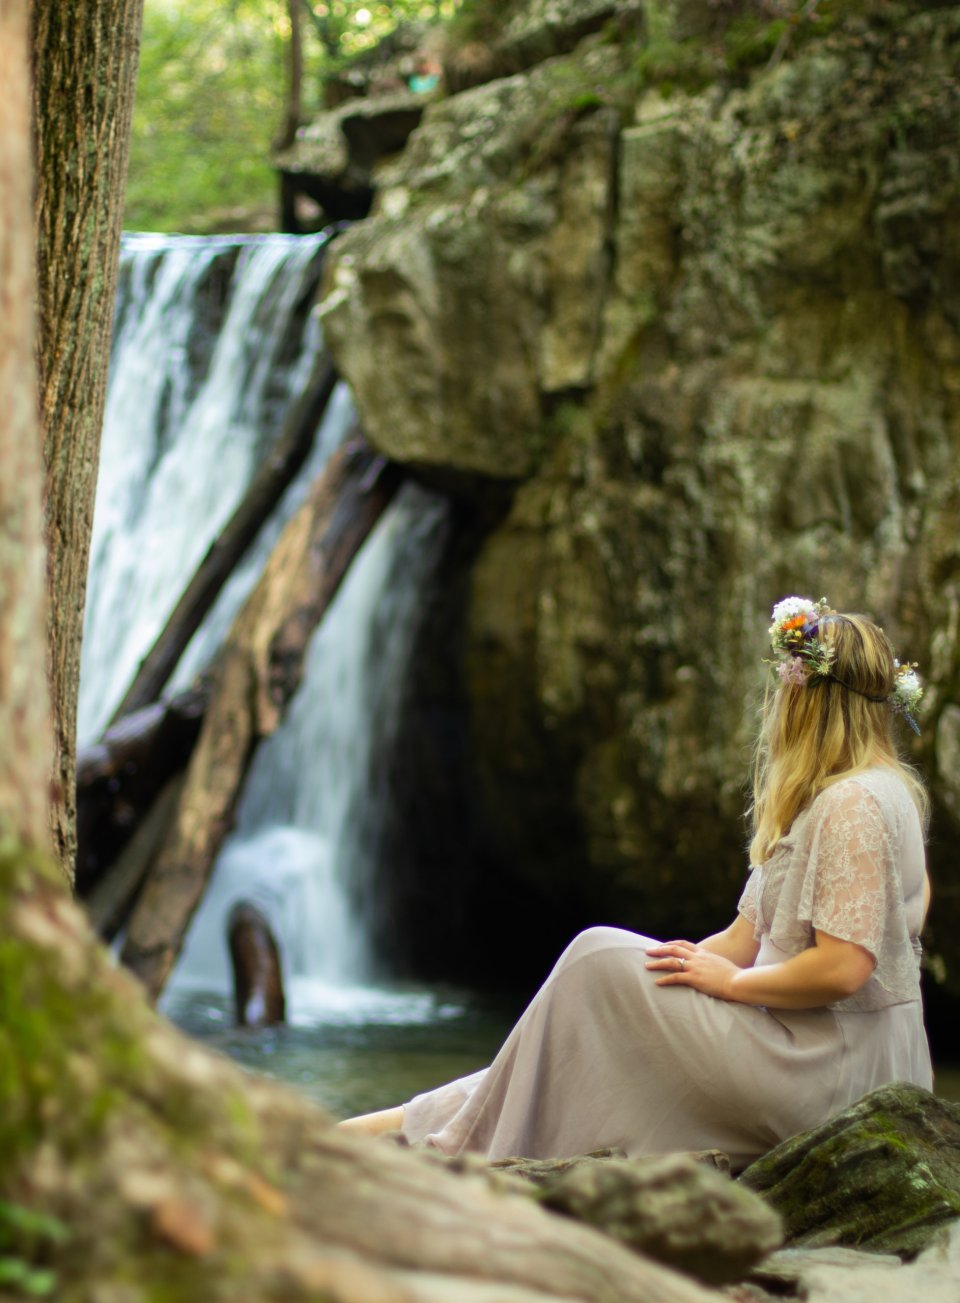 Girl in a purple dress with a flower crown sitting by the waterfall at Kilgore Falls photo shoot